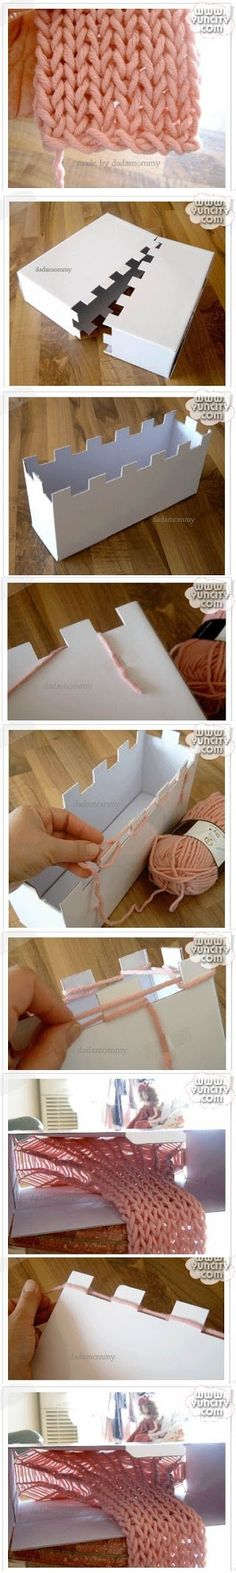 knitting loom from a cardboard box! Tutorial for Crochet, Knitting, Crafts. Yarn Projects, Knitting Projects, Crochet Projects, Sewing Projects, Spool Knitting, Kids Knitting, Giant Knitting, Knitting Looms, Finger Knitting